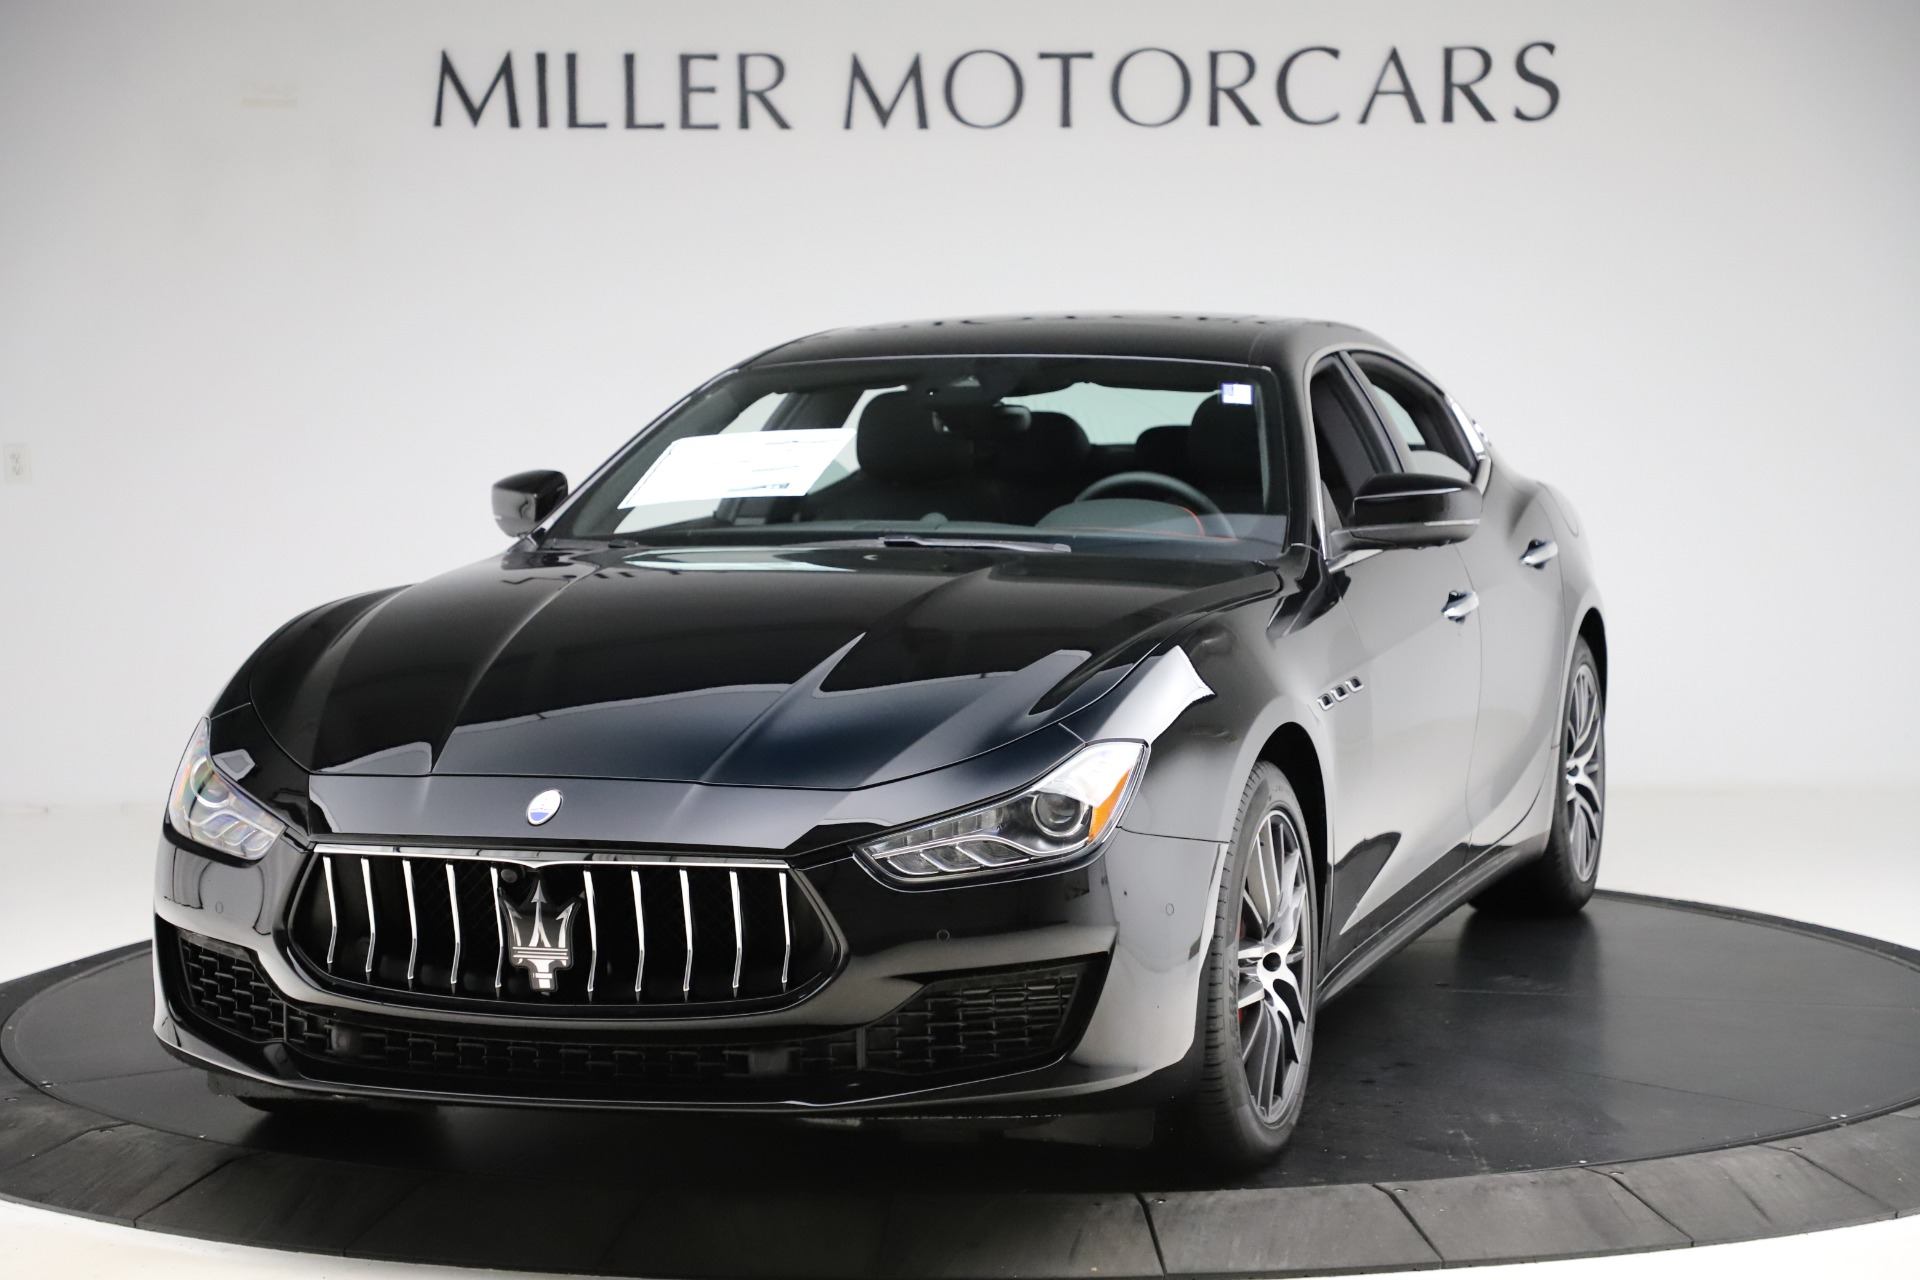 New 2020 Maserati Ghibli S Q4 for sale Sold at Alfa Romeo of Greenwich in Greenwich CT 06830 1